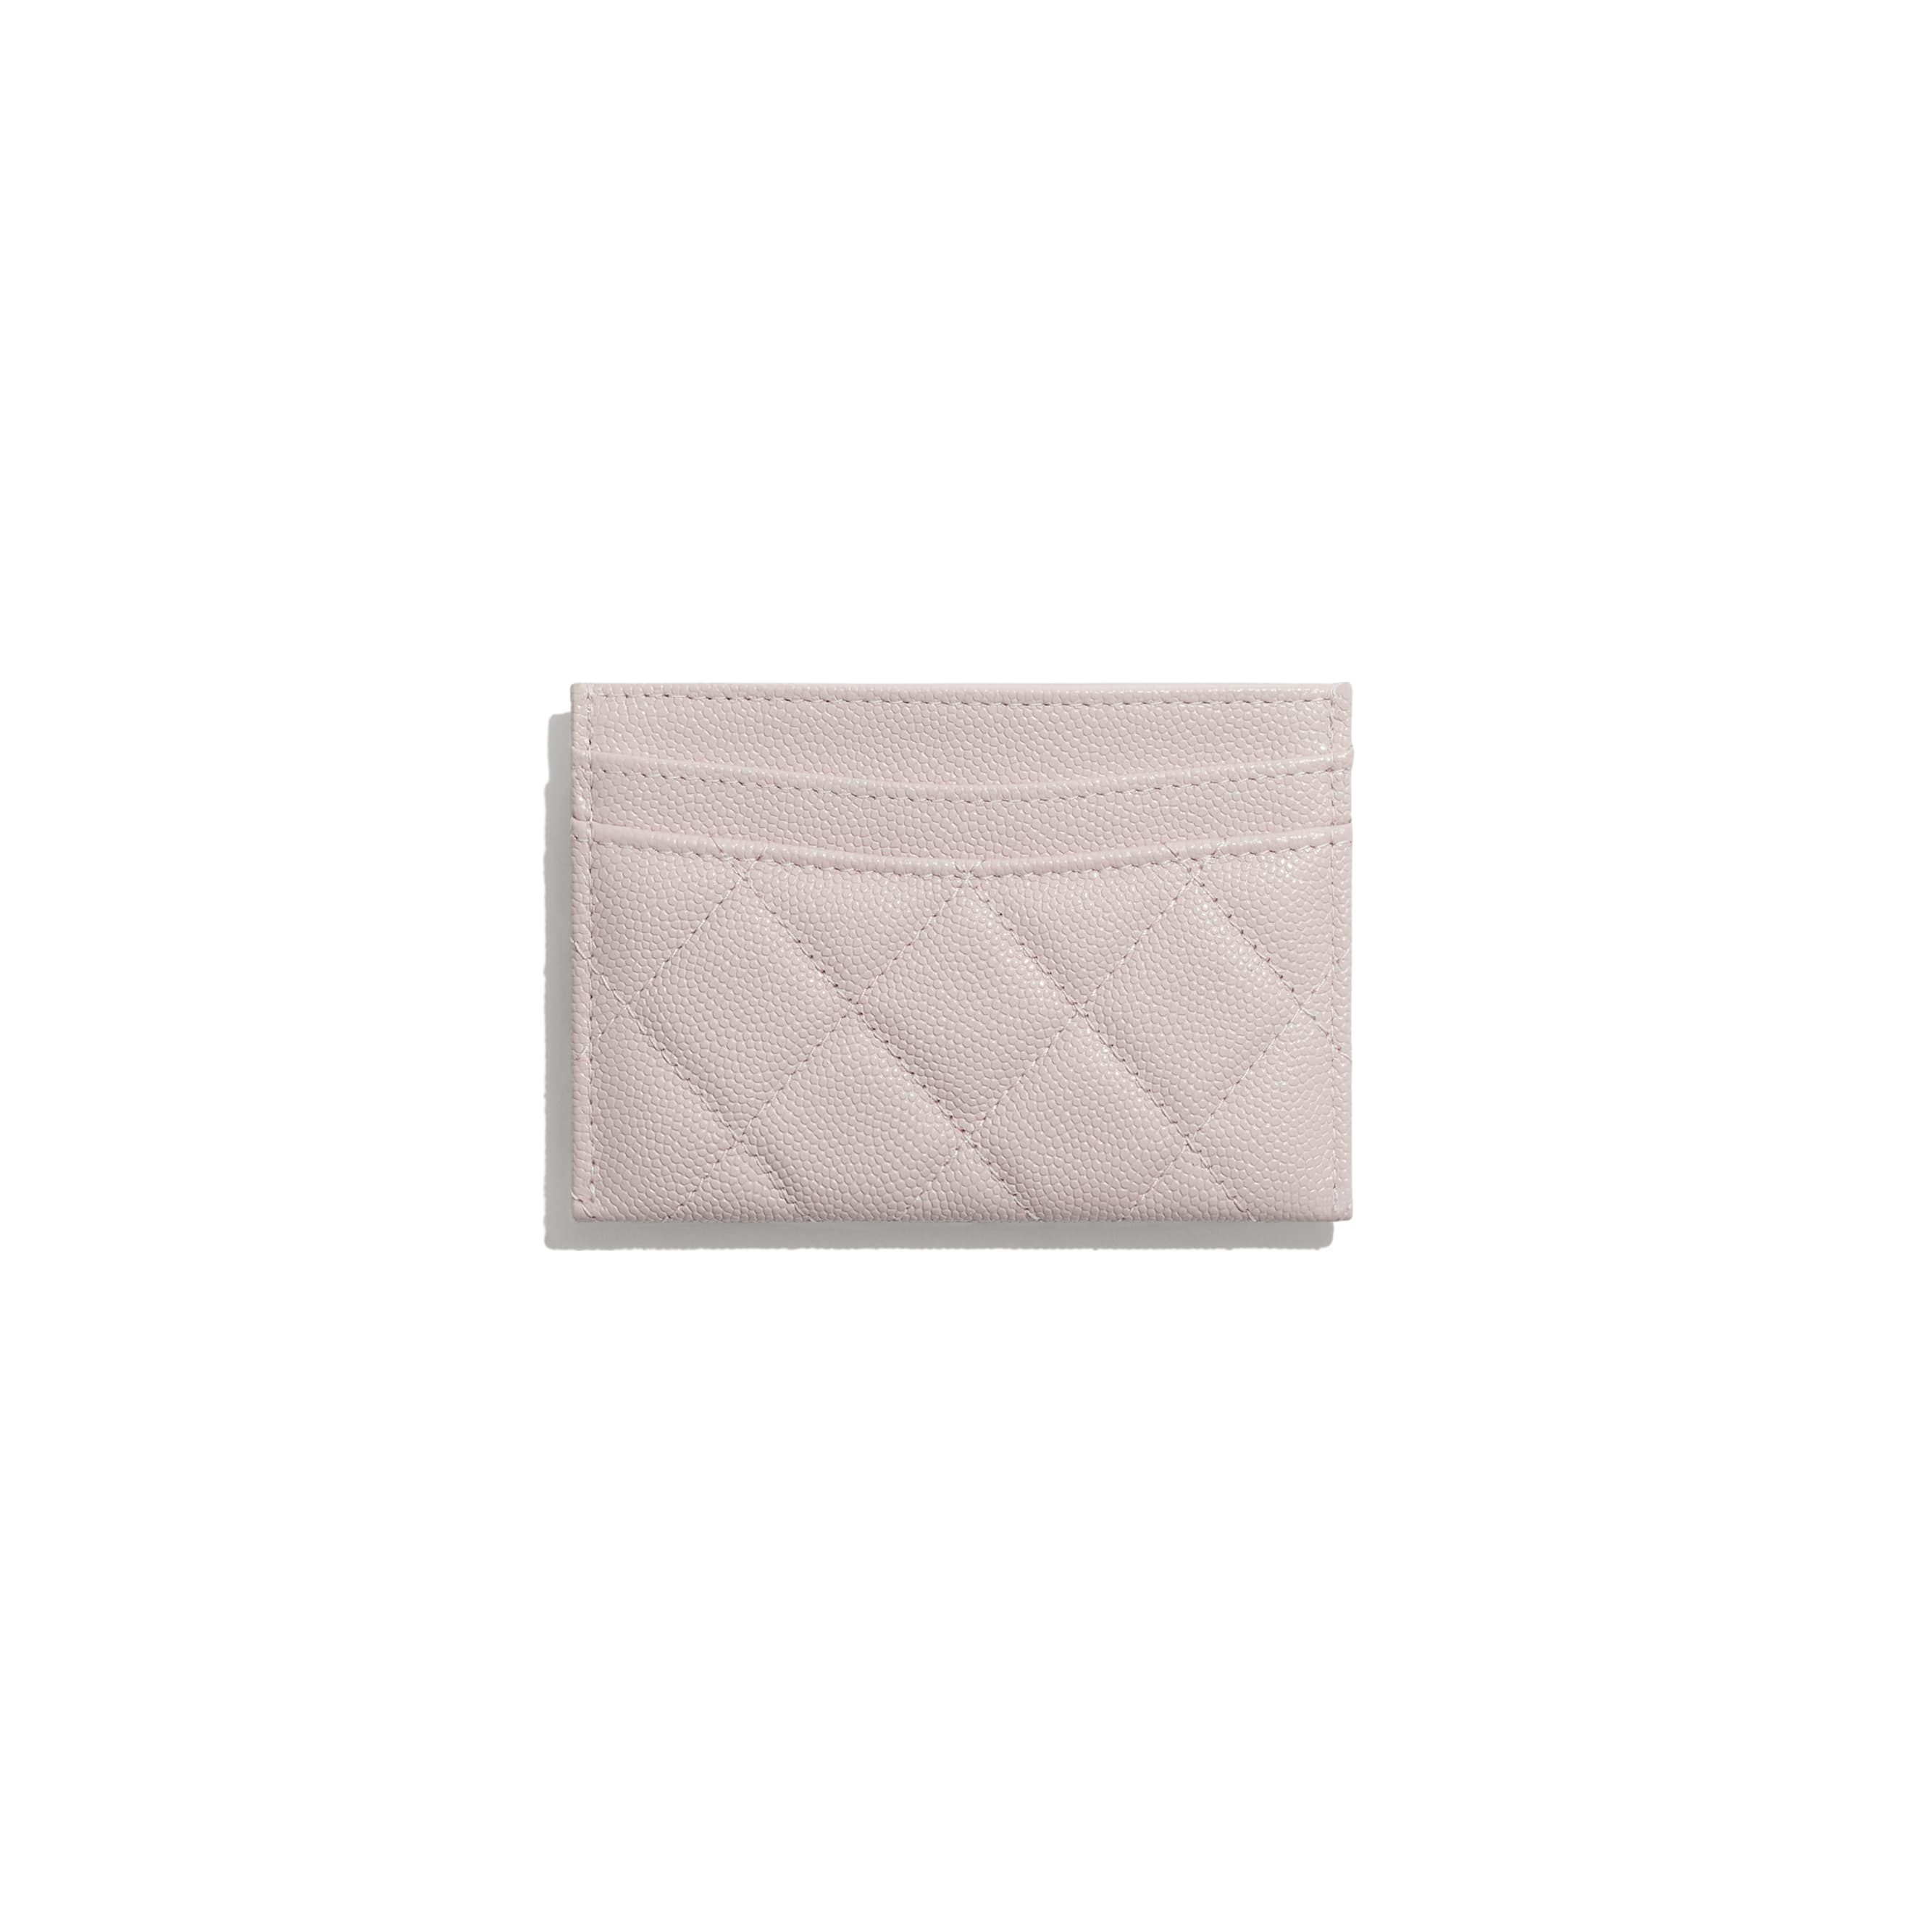 Classic Card Holder - Light Pink - Grained Calfskin & Gold-Tone Metal - CHANEL - Alternative view - see standard sized version